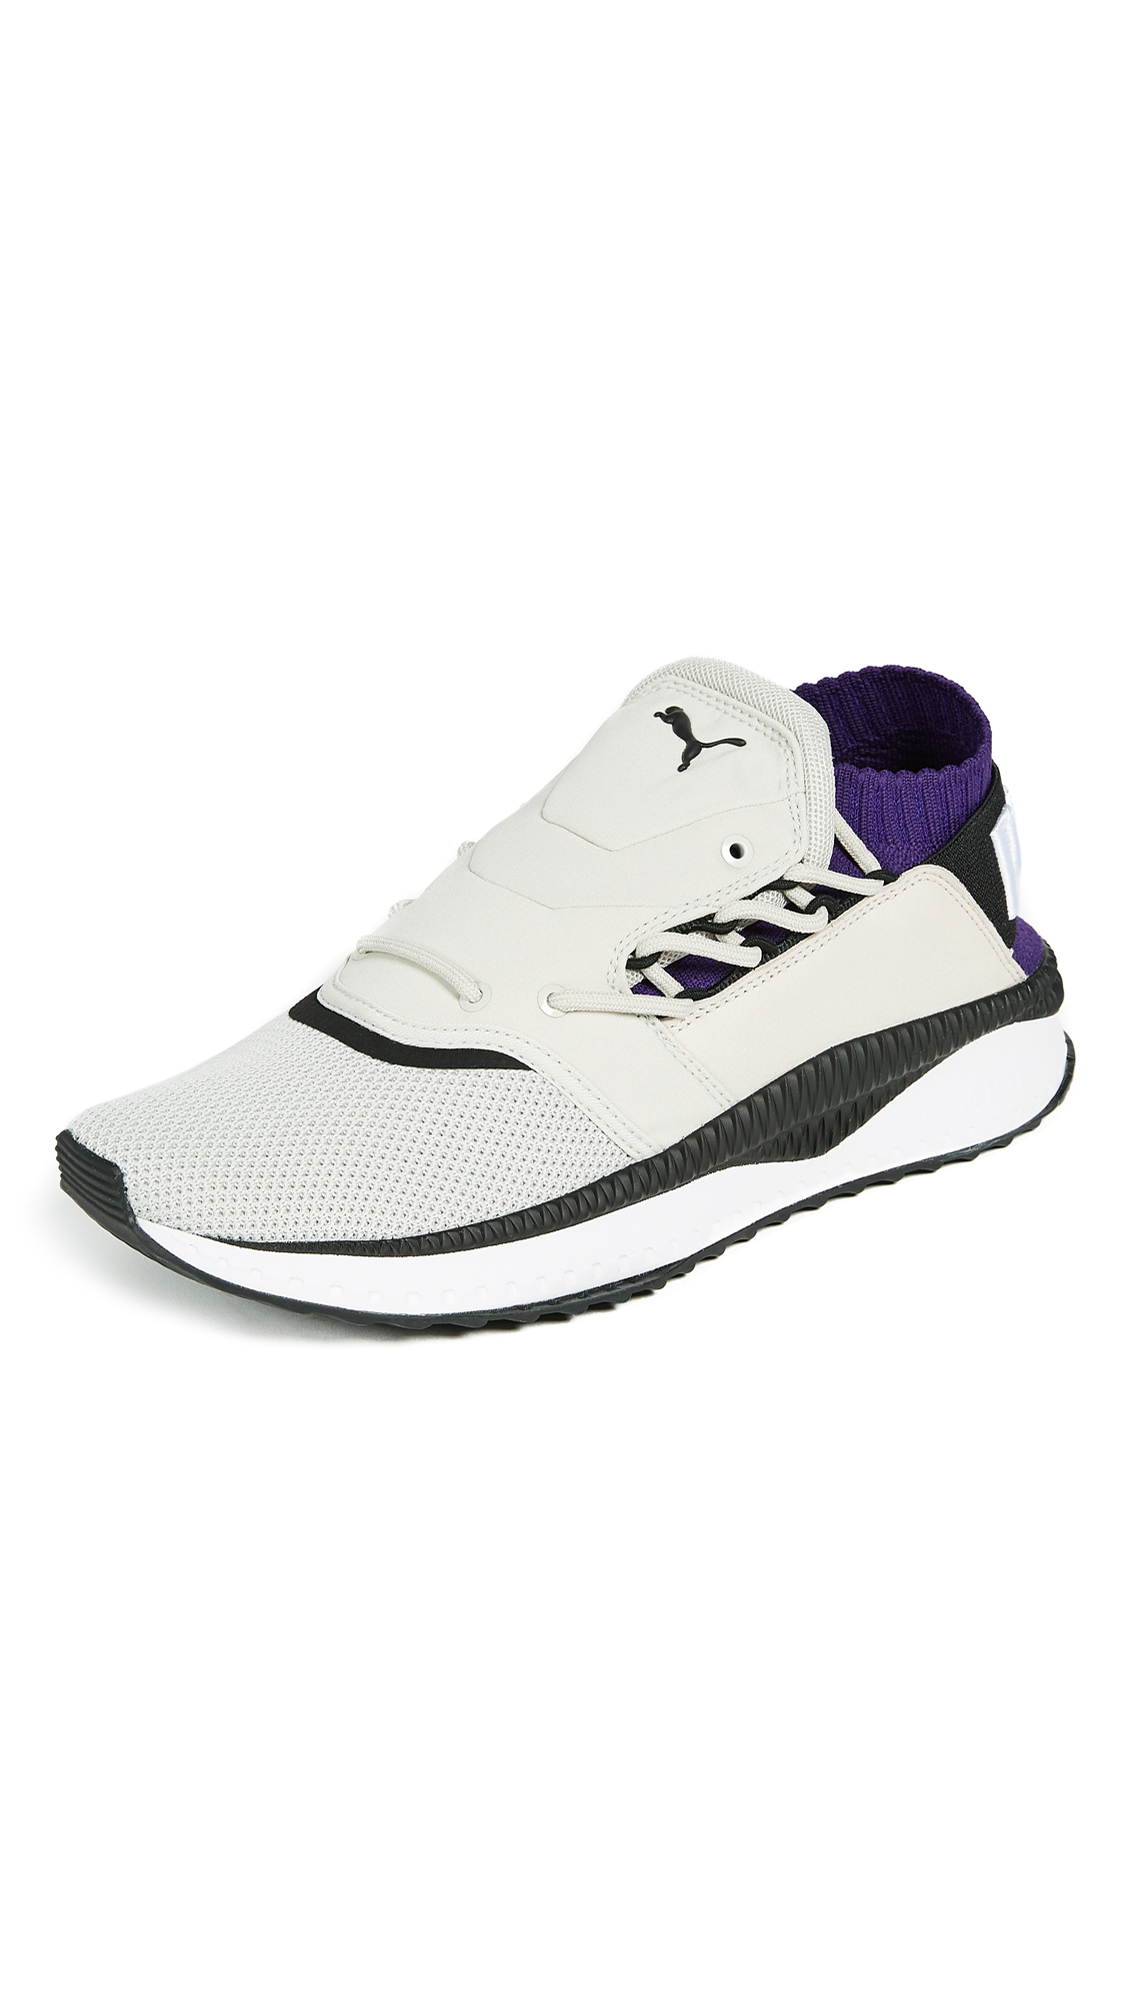 8a5904d5a89e Puma Tsugi Shinsei Dual Sneakers In Grey Grape White